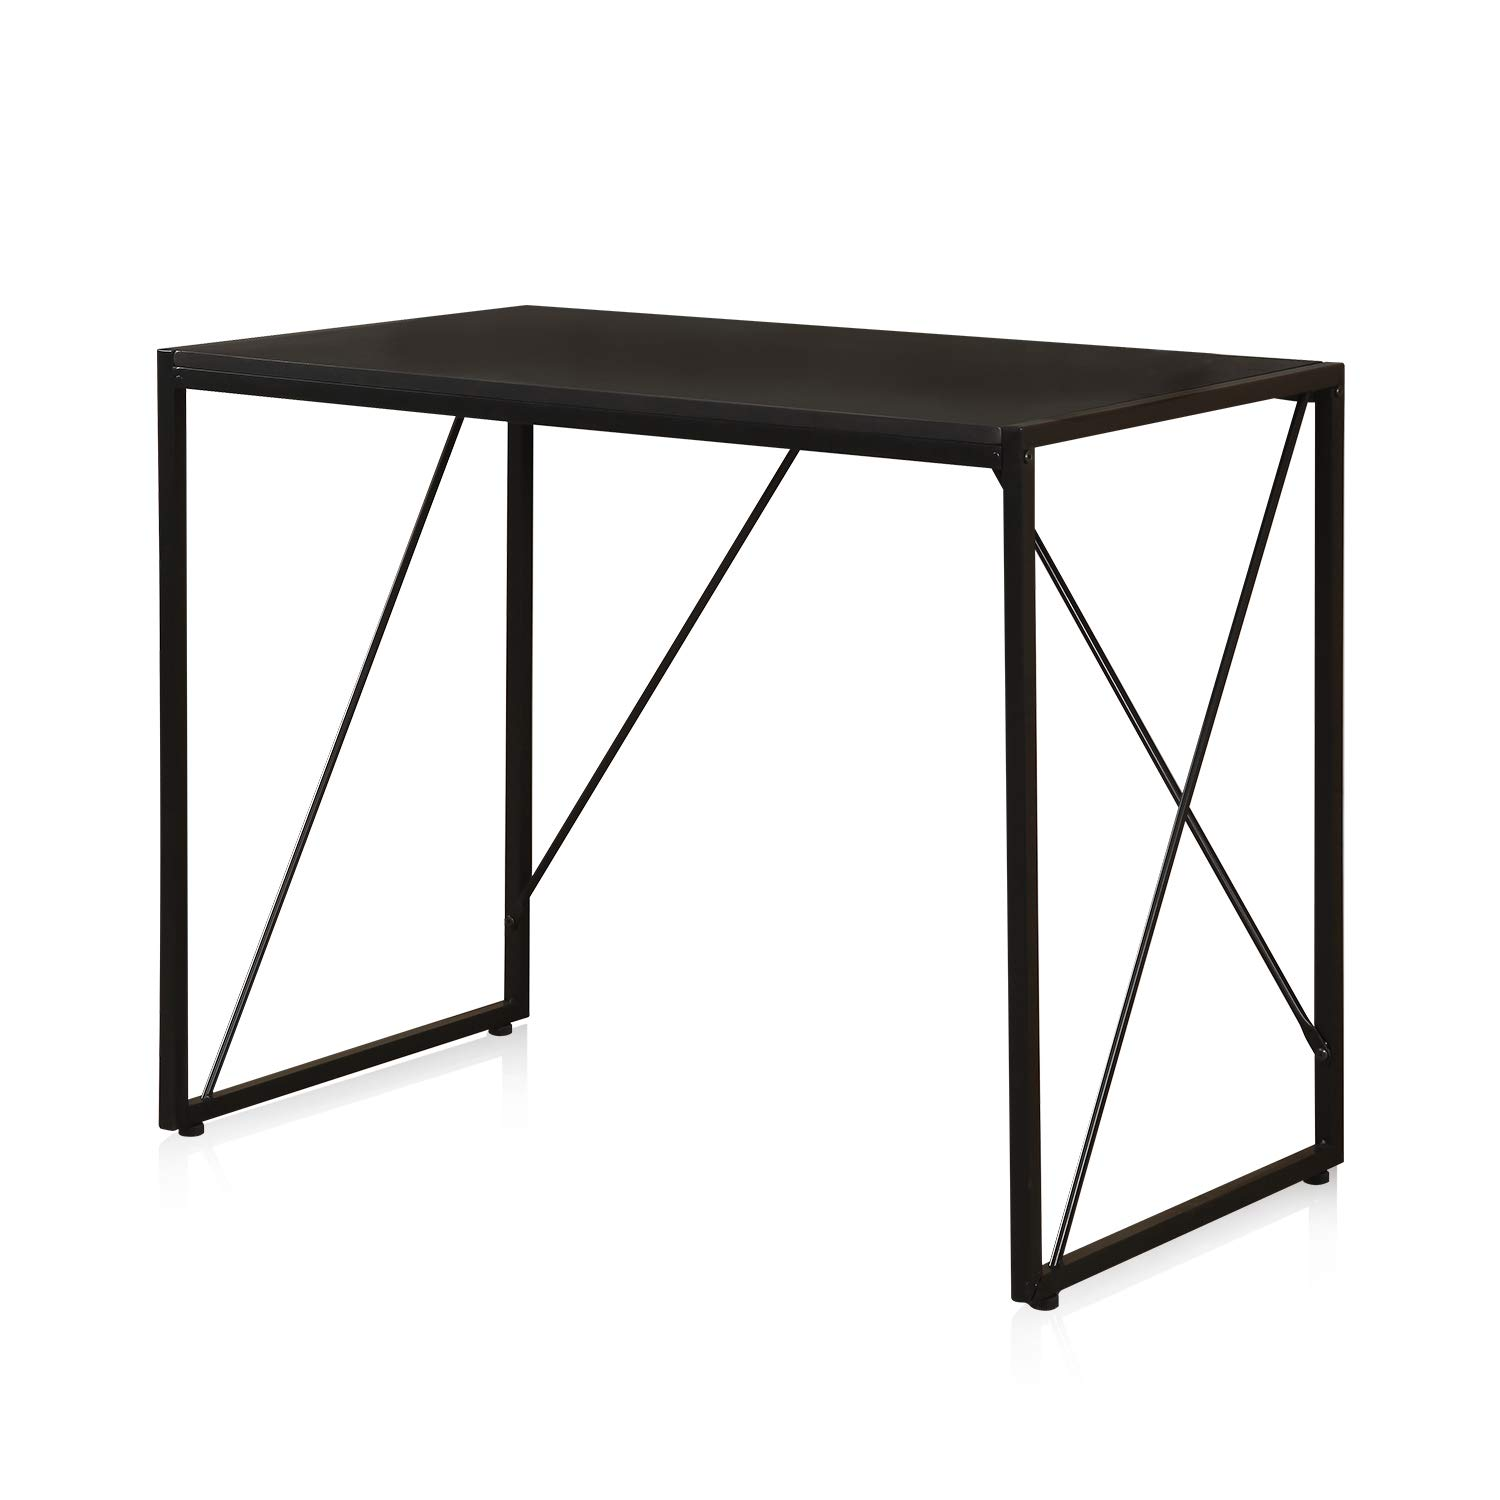 Computer Desk, Home Office Wood Sturdy Frame Compact Writing Table for Small Place, Apartment Office Furniture Sofa Bed Table, Study Writing, Table Small Gaming Desk HJ170570BK